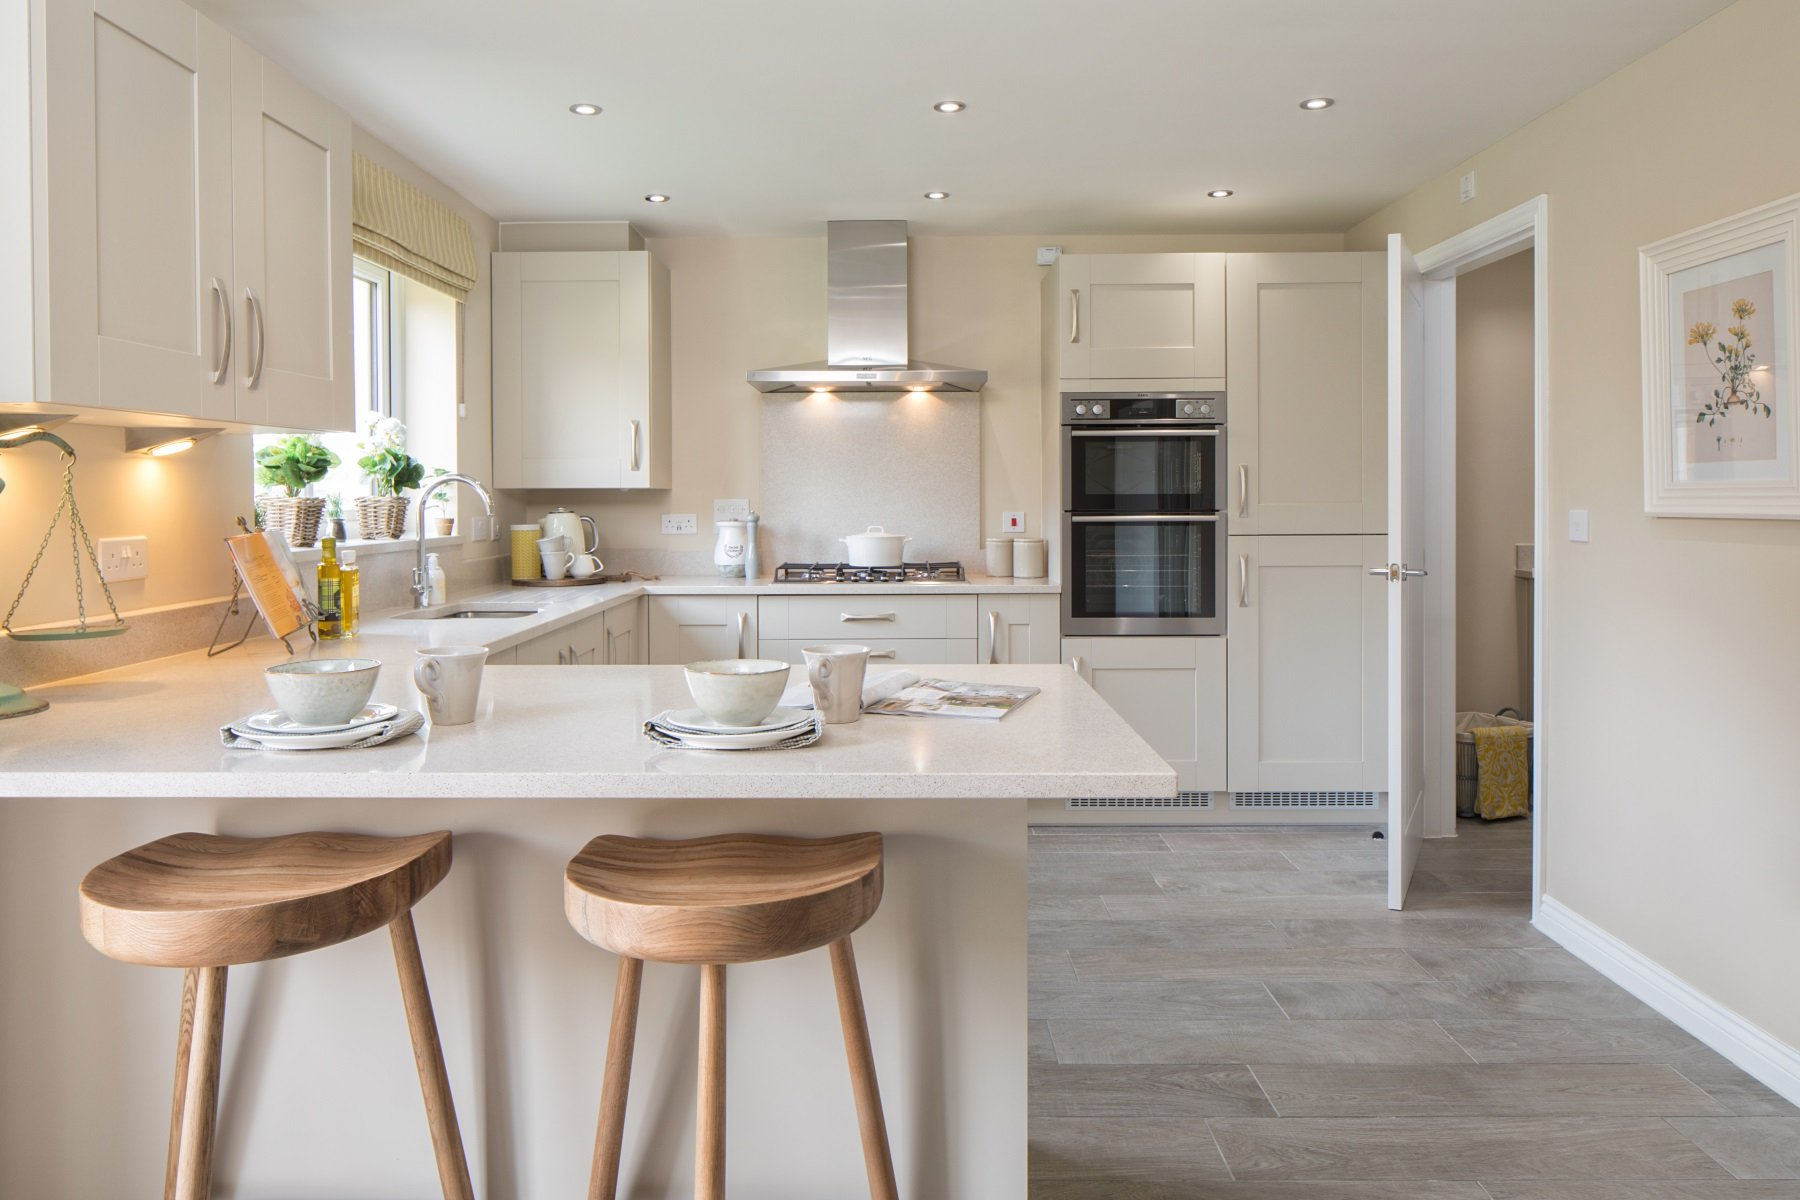 TW Exeter - Cranbrook - Midford example kitchen